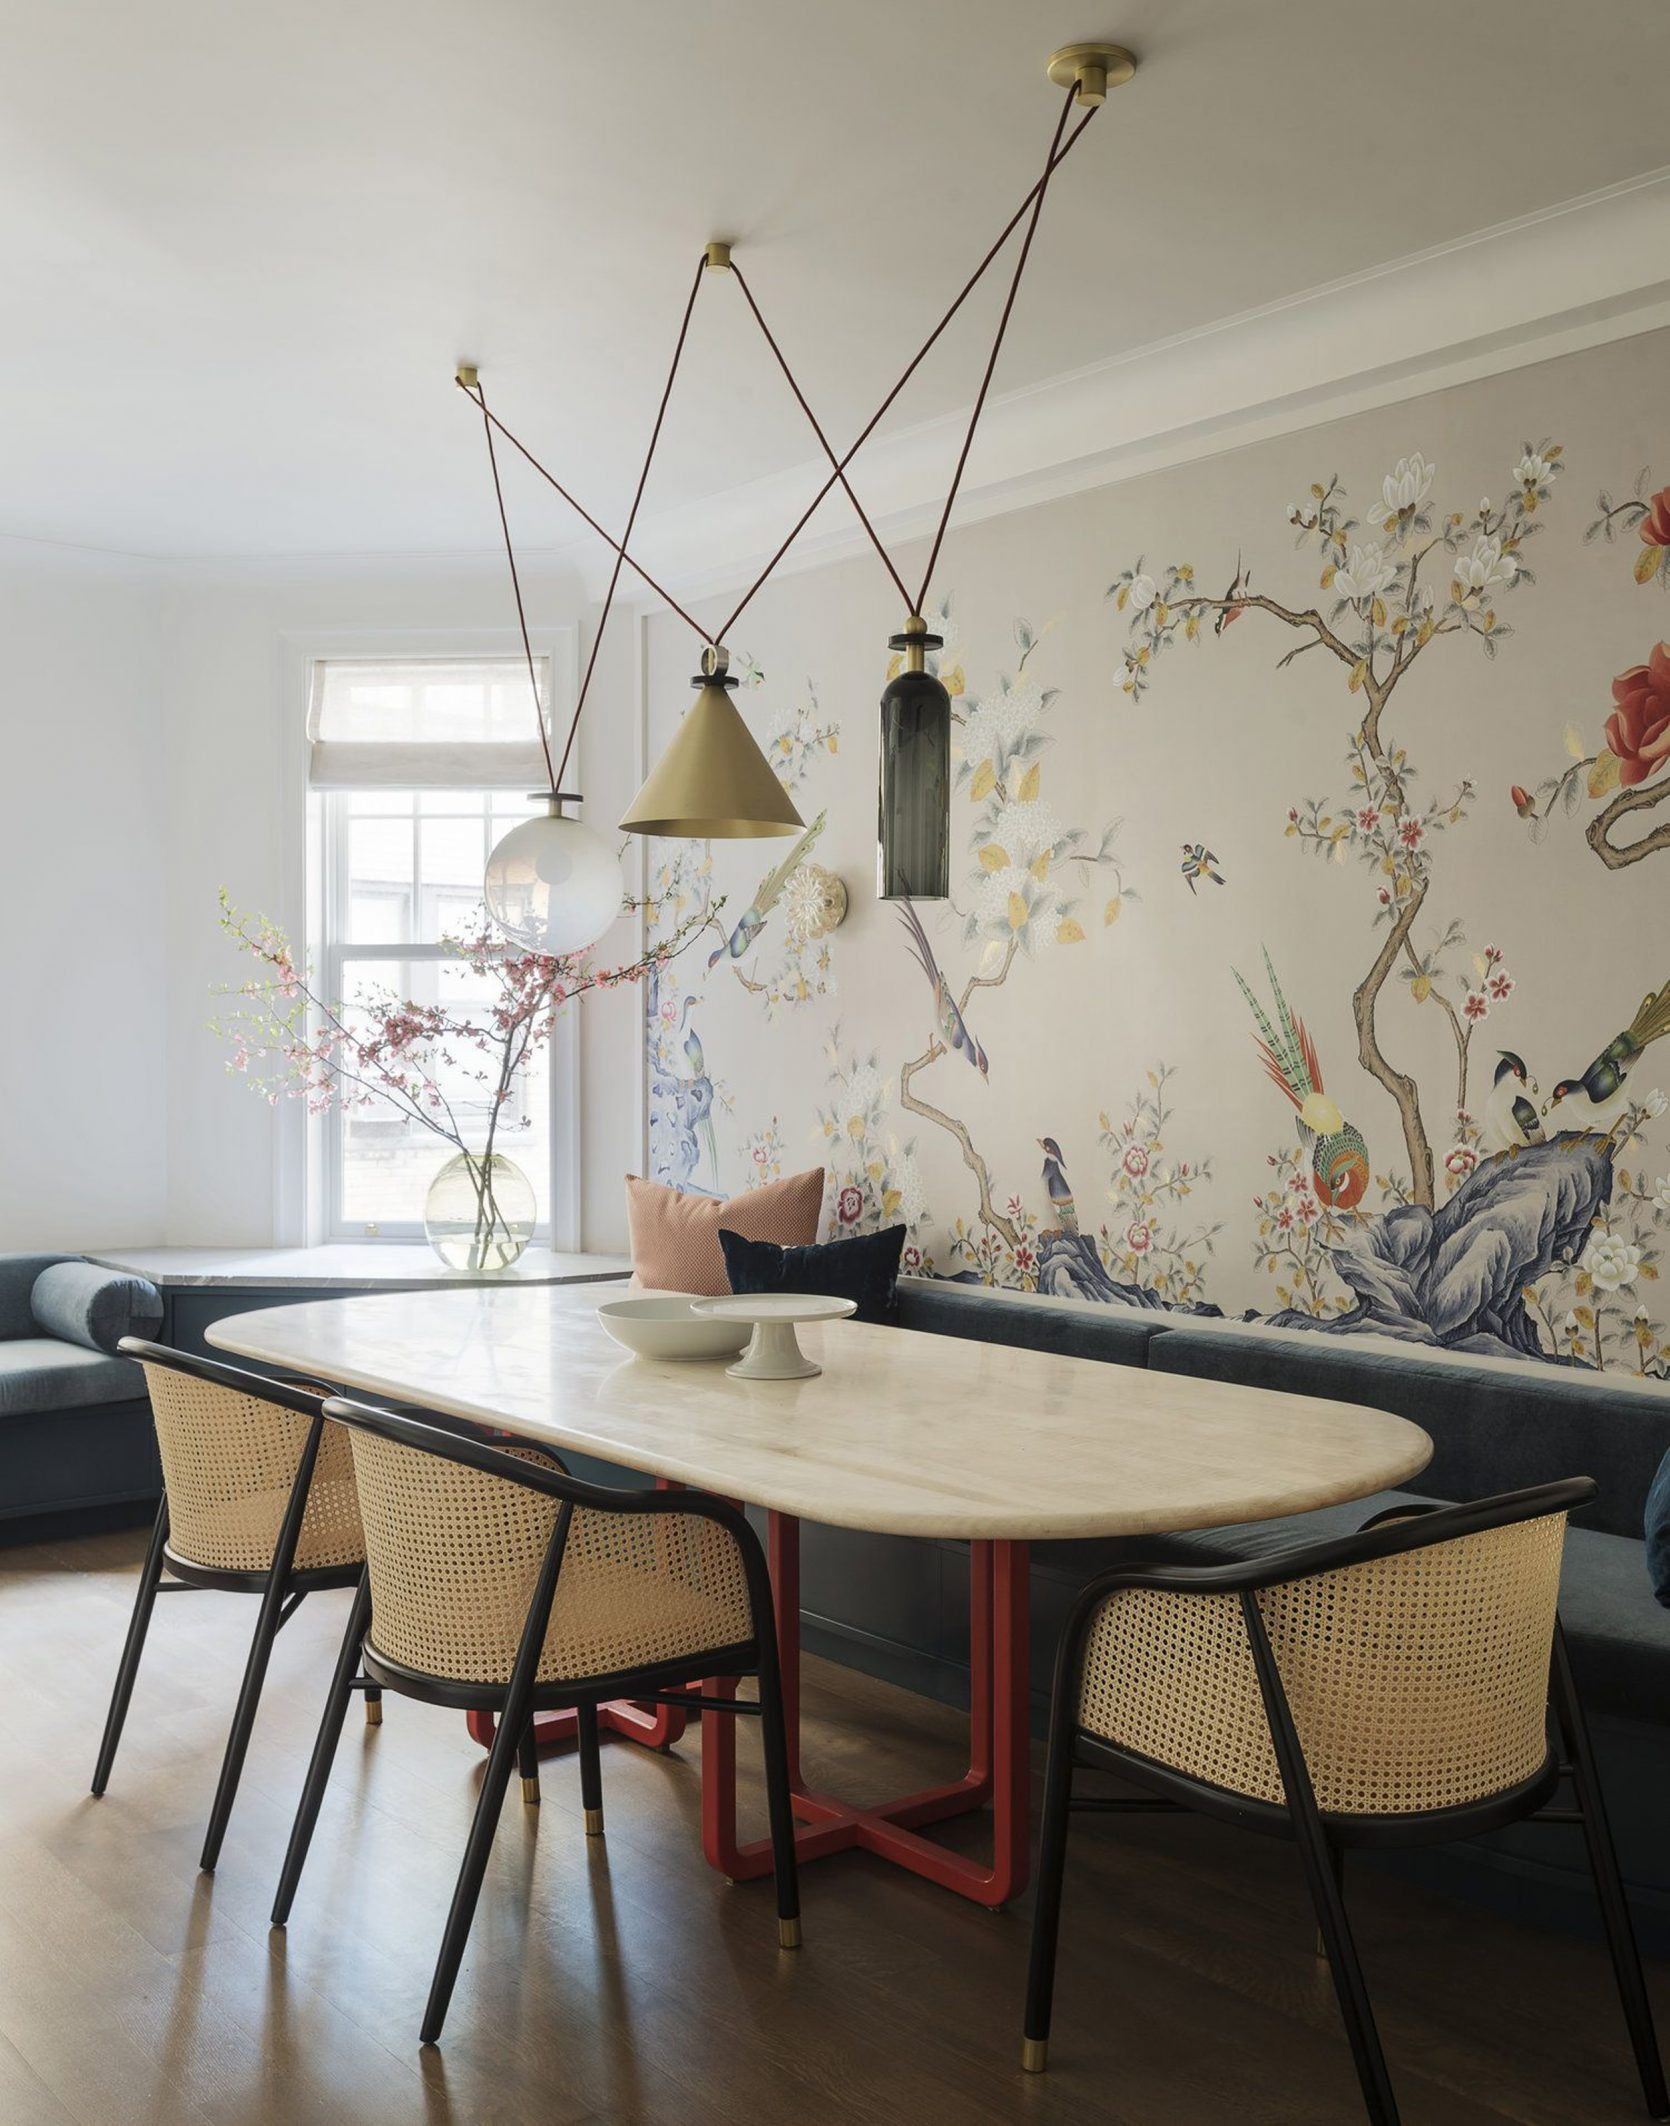 2018 Design Trends Chinoiserie Is Making A Comeback Dining Room